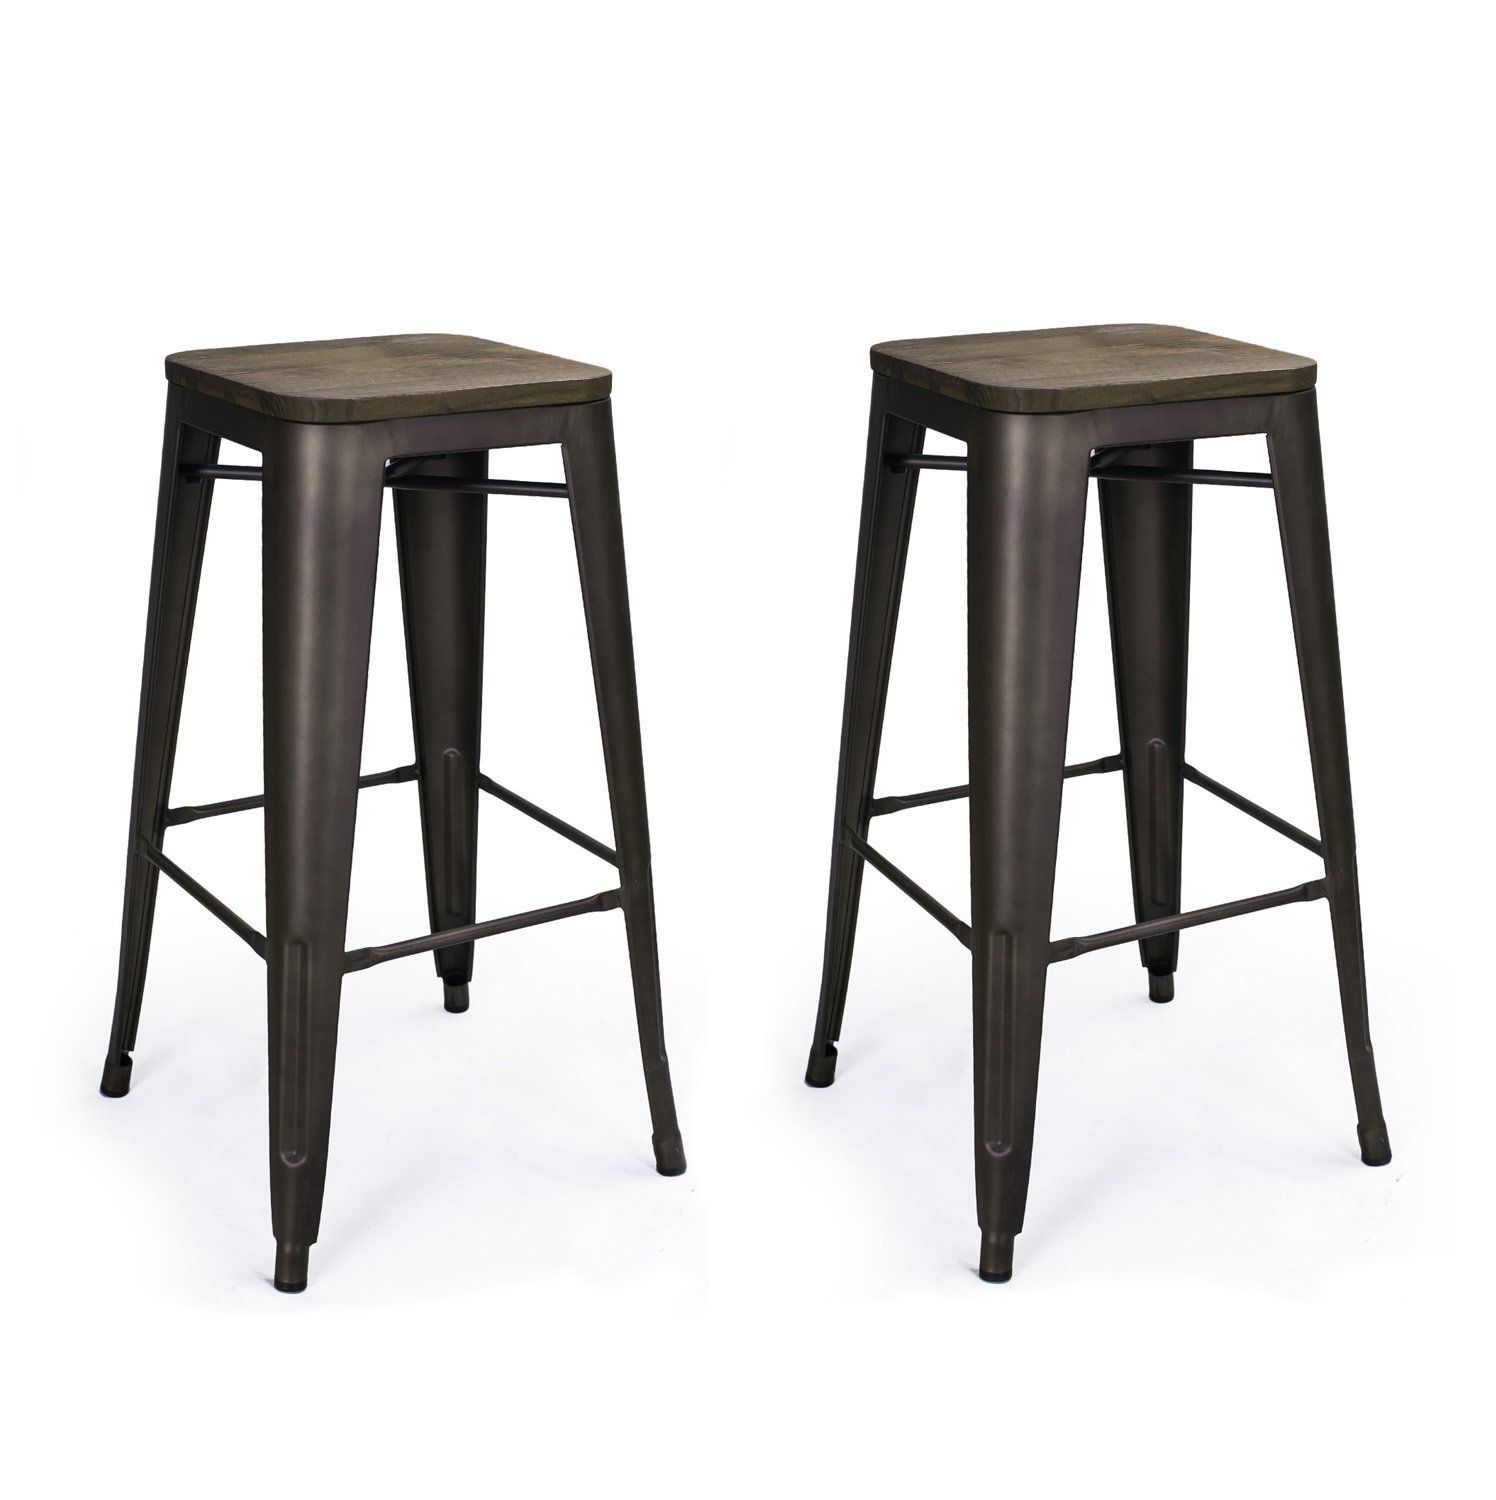 Rustikale Barhocker Stools Vintage Bar Stool Metal Frameood Top Adjustable Height